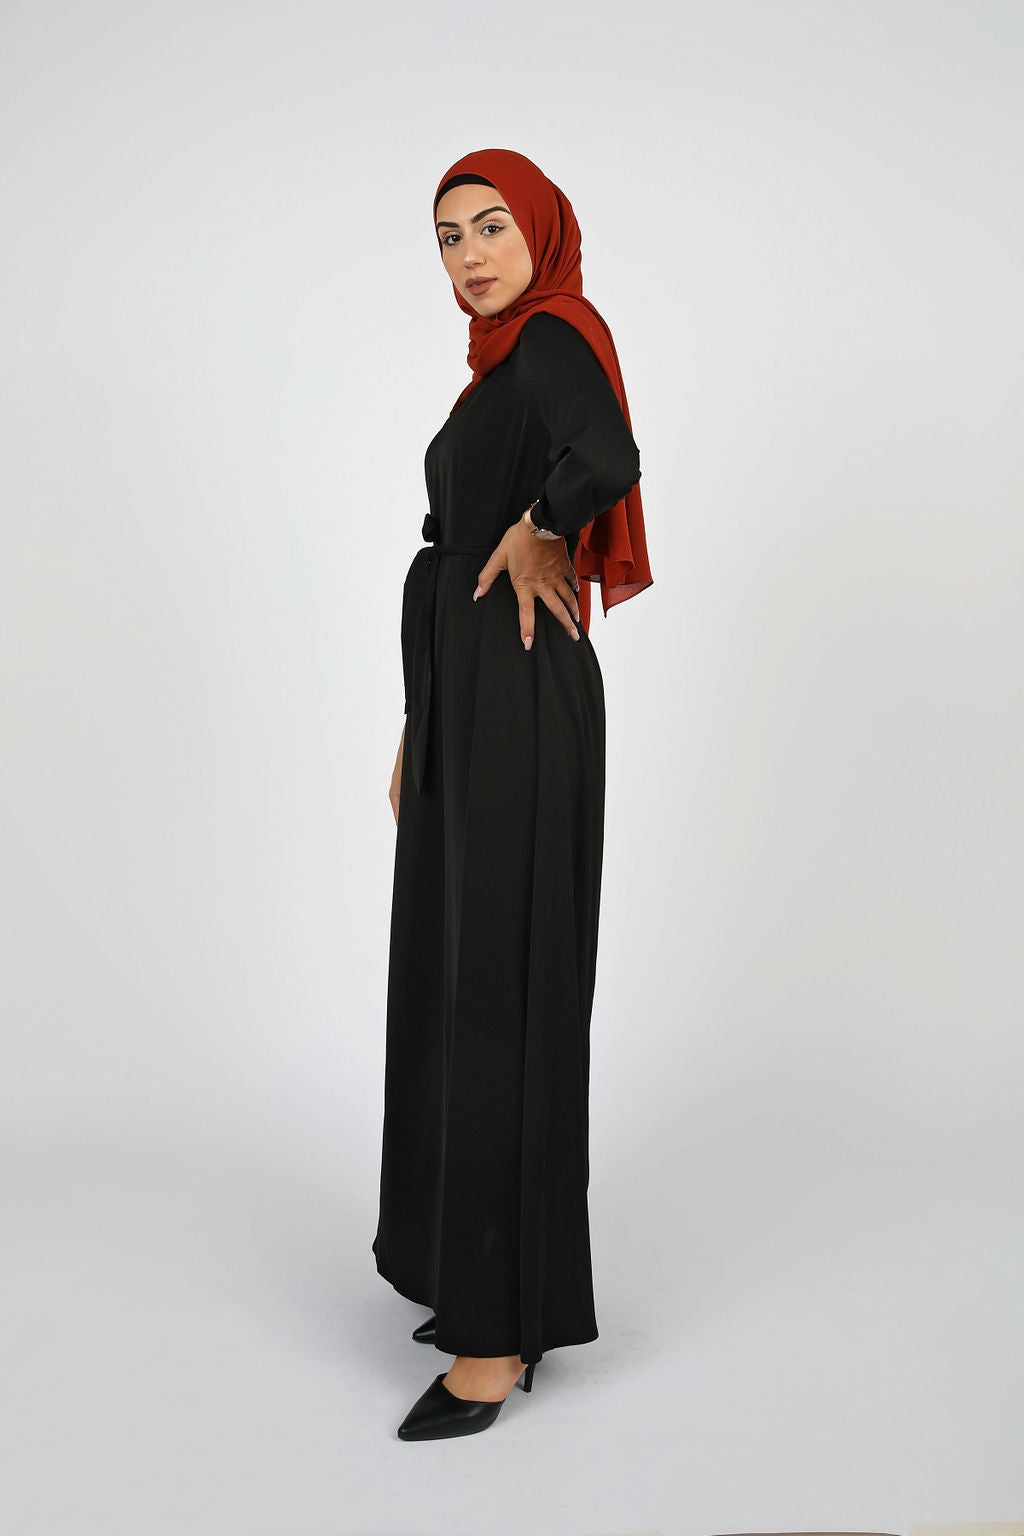 Black Plain Maxi Dress - Modernhijabi.com